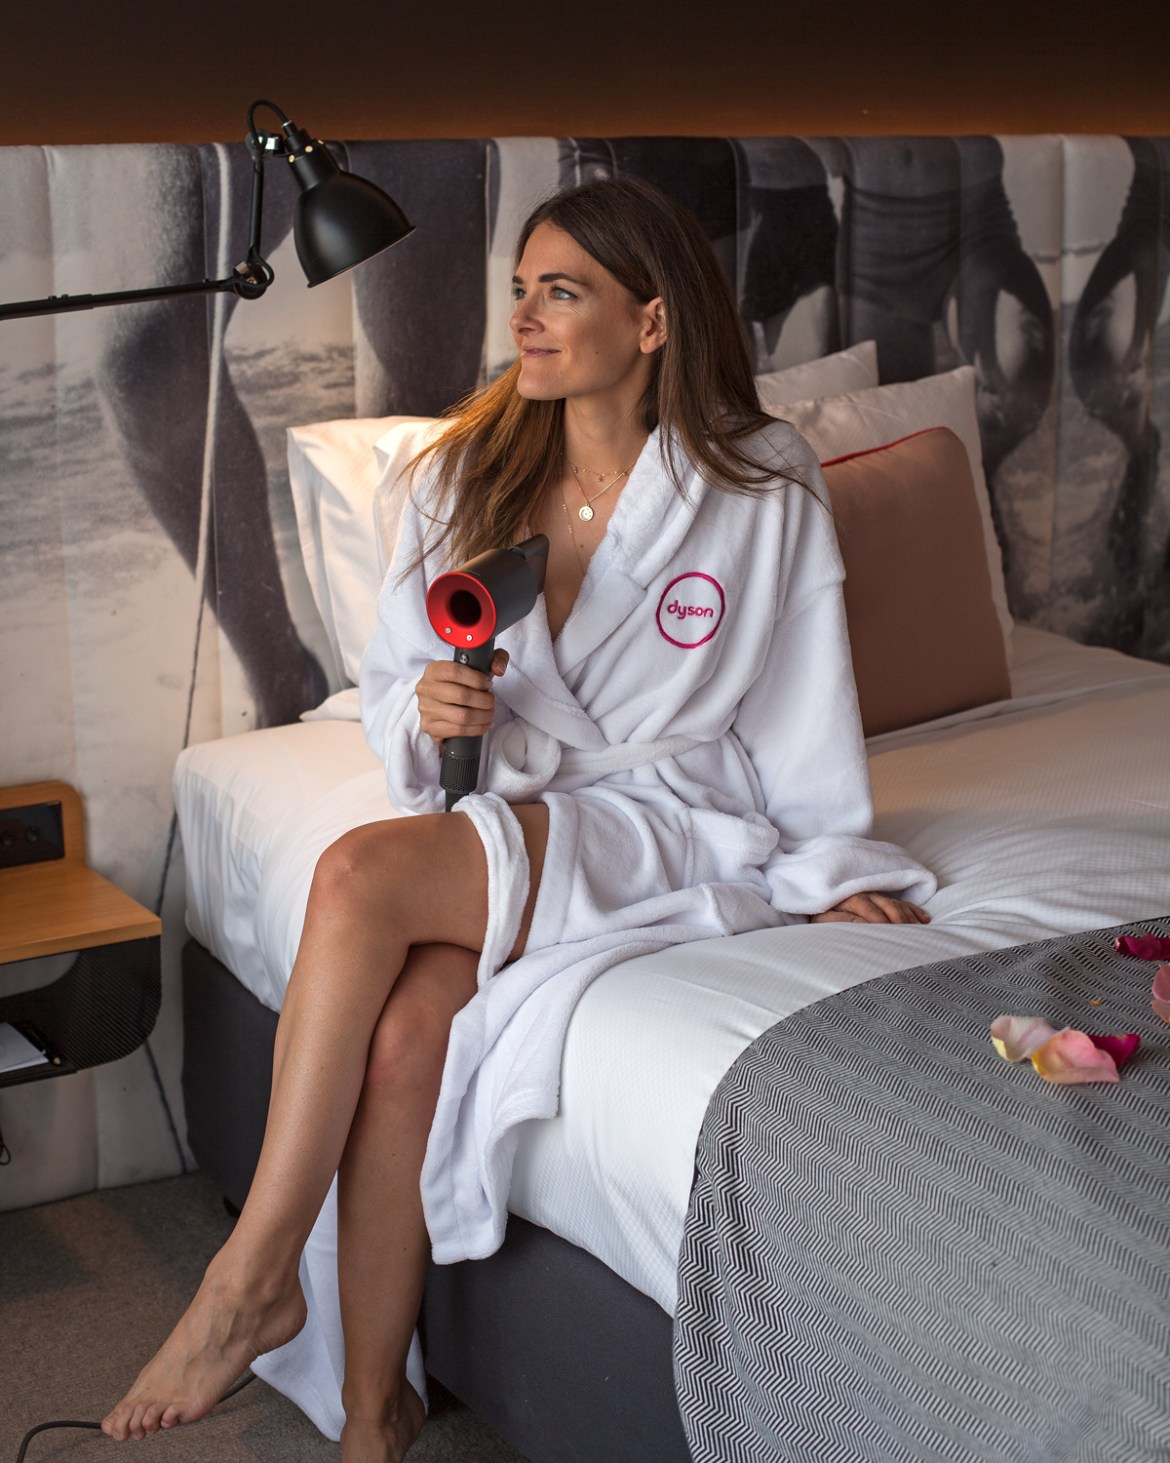 Jenelle Witty from Inspiring Wit Blog at the Ovolo Wooloomooloo hotel for MBFWA 2018 with Dyson Hair wearing Dyson robe